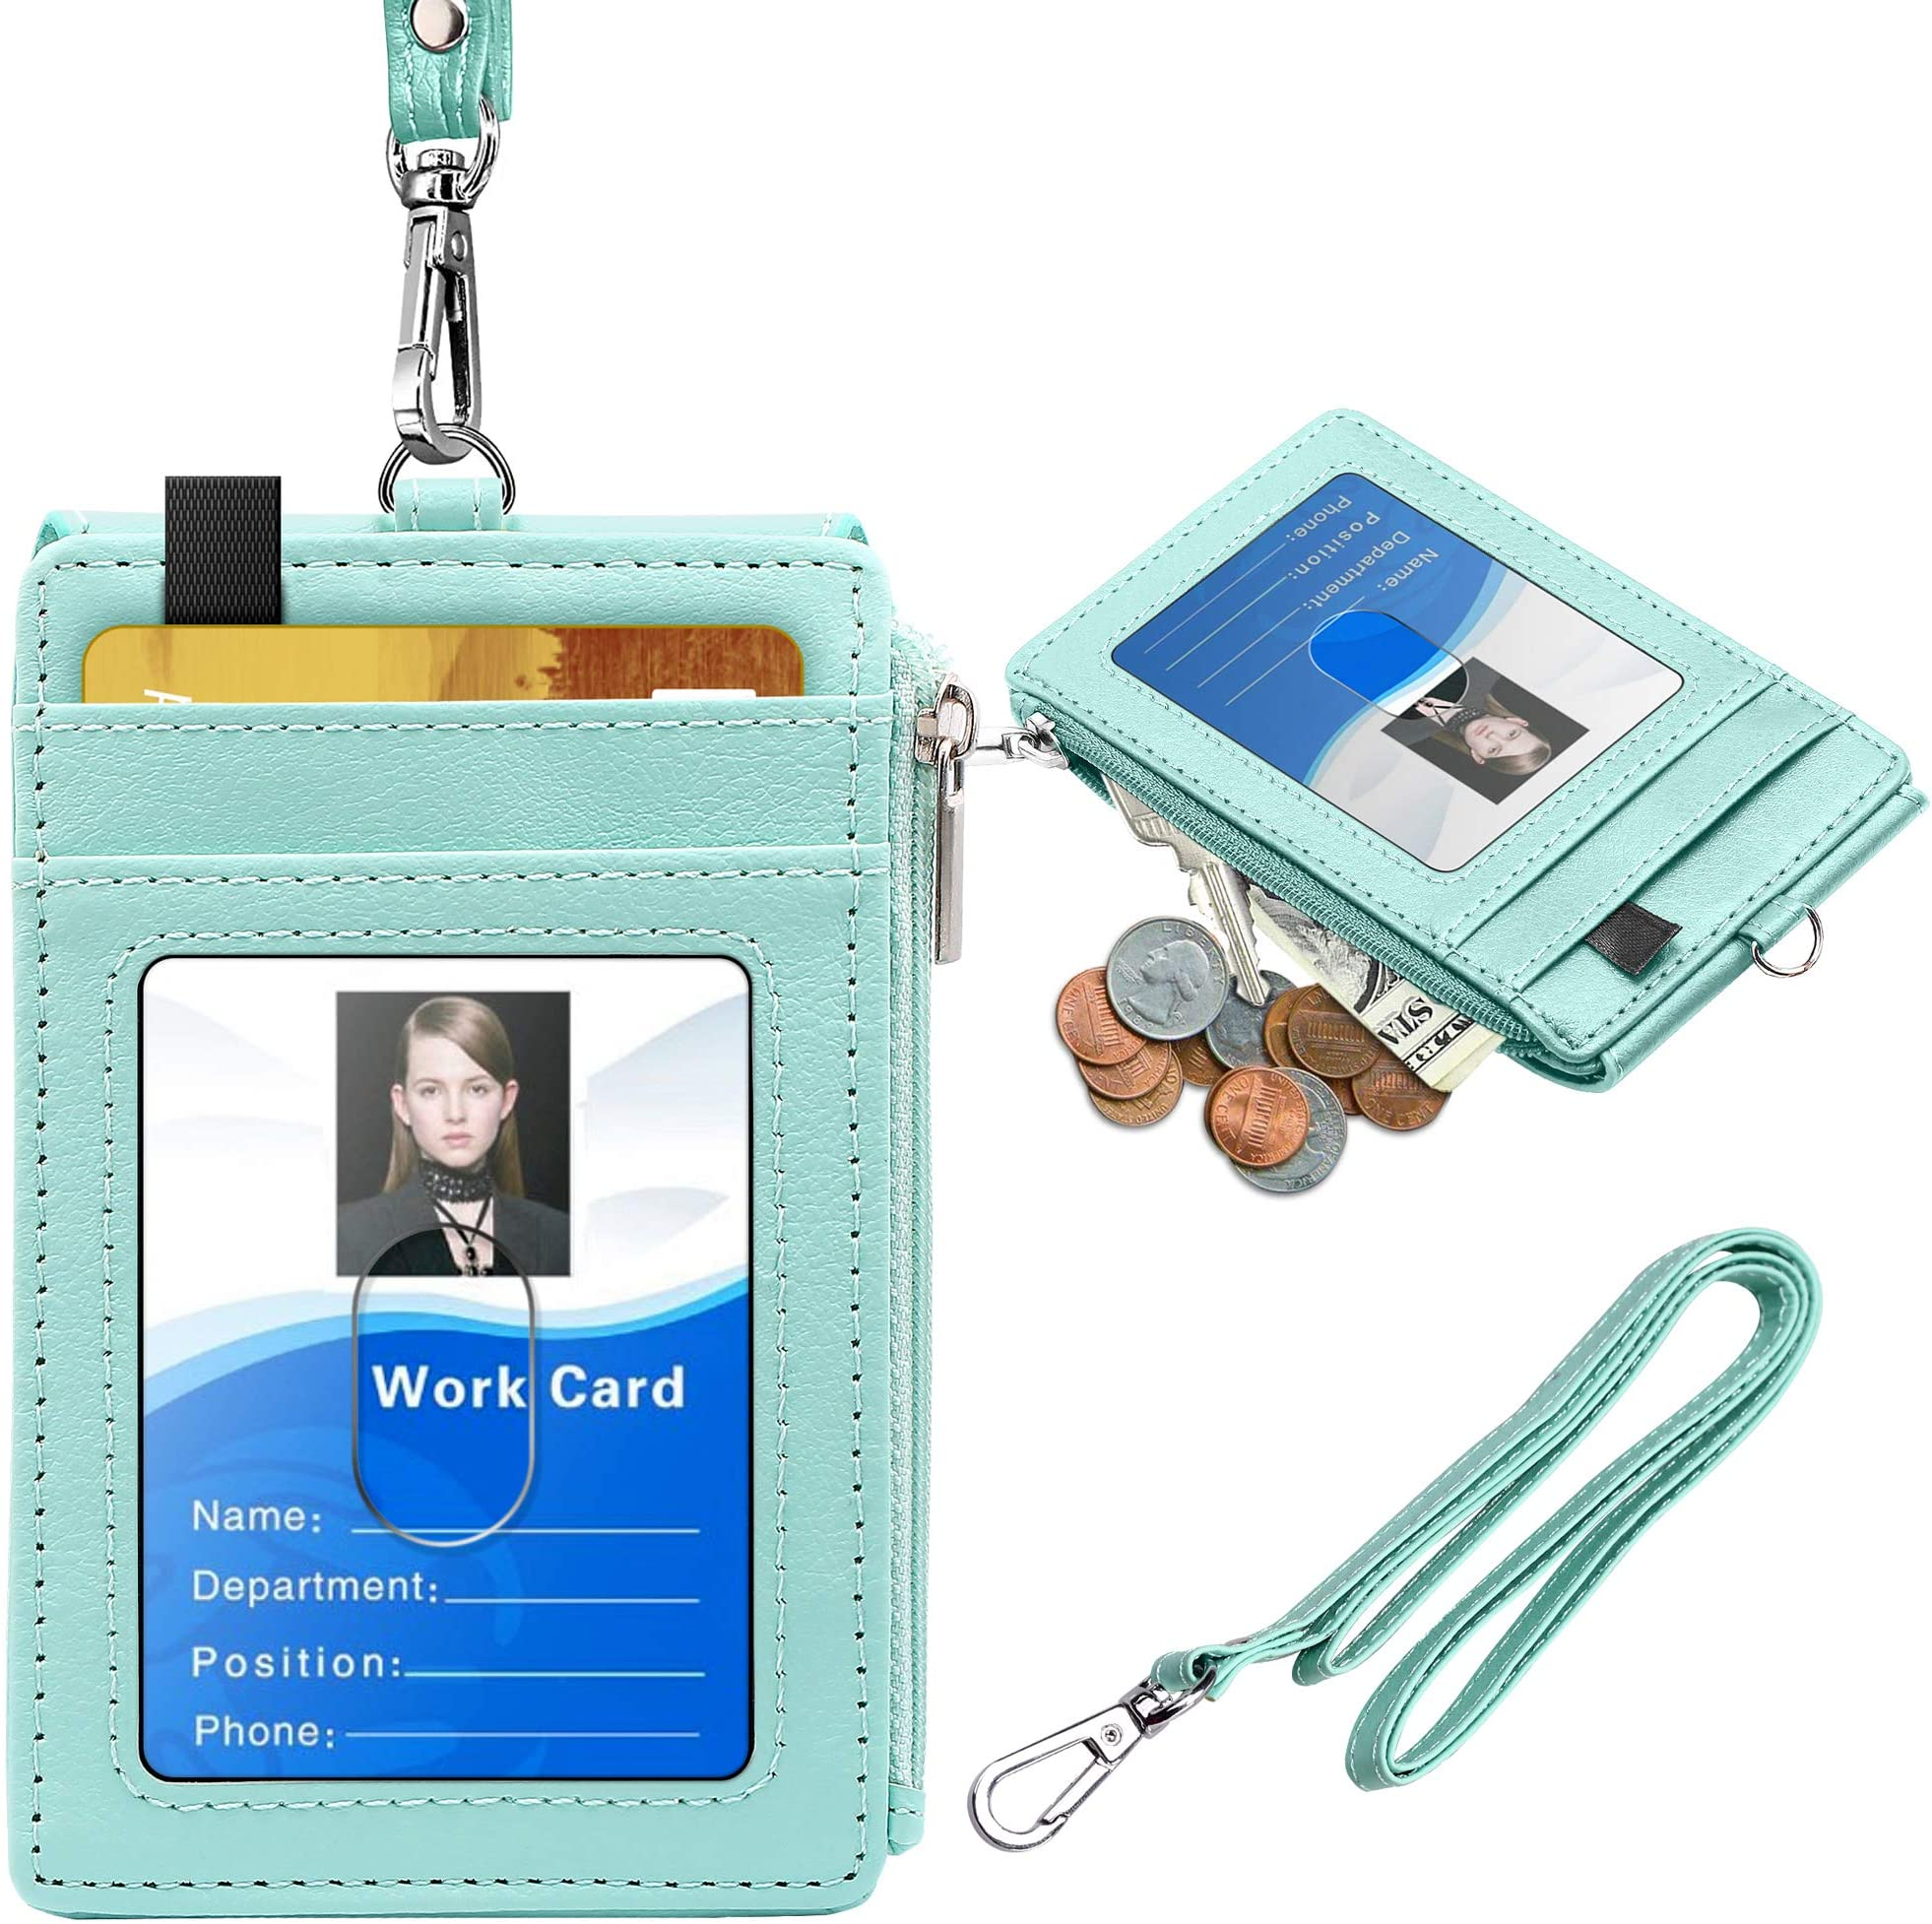 Durable Acrylic ID Name Card Holder Pocket  Staff Work ID Badge Holder Case 1Pc